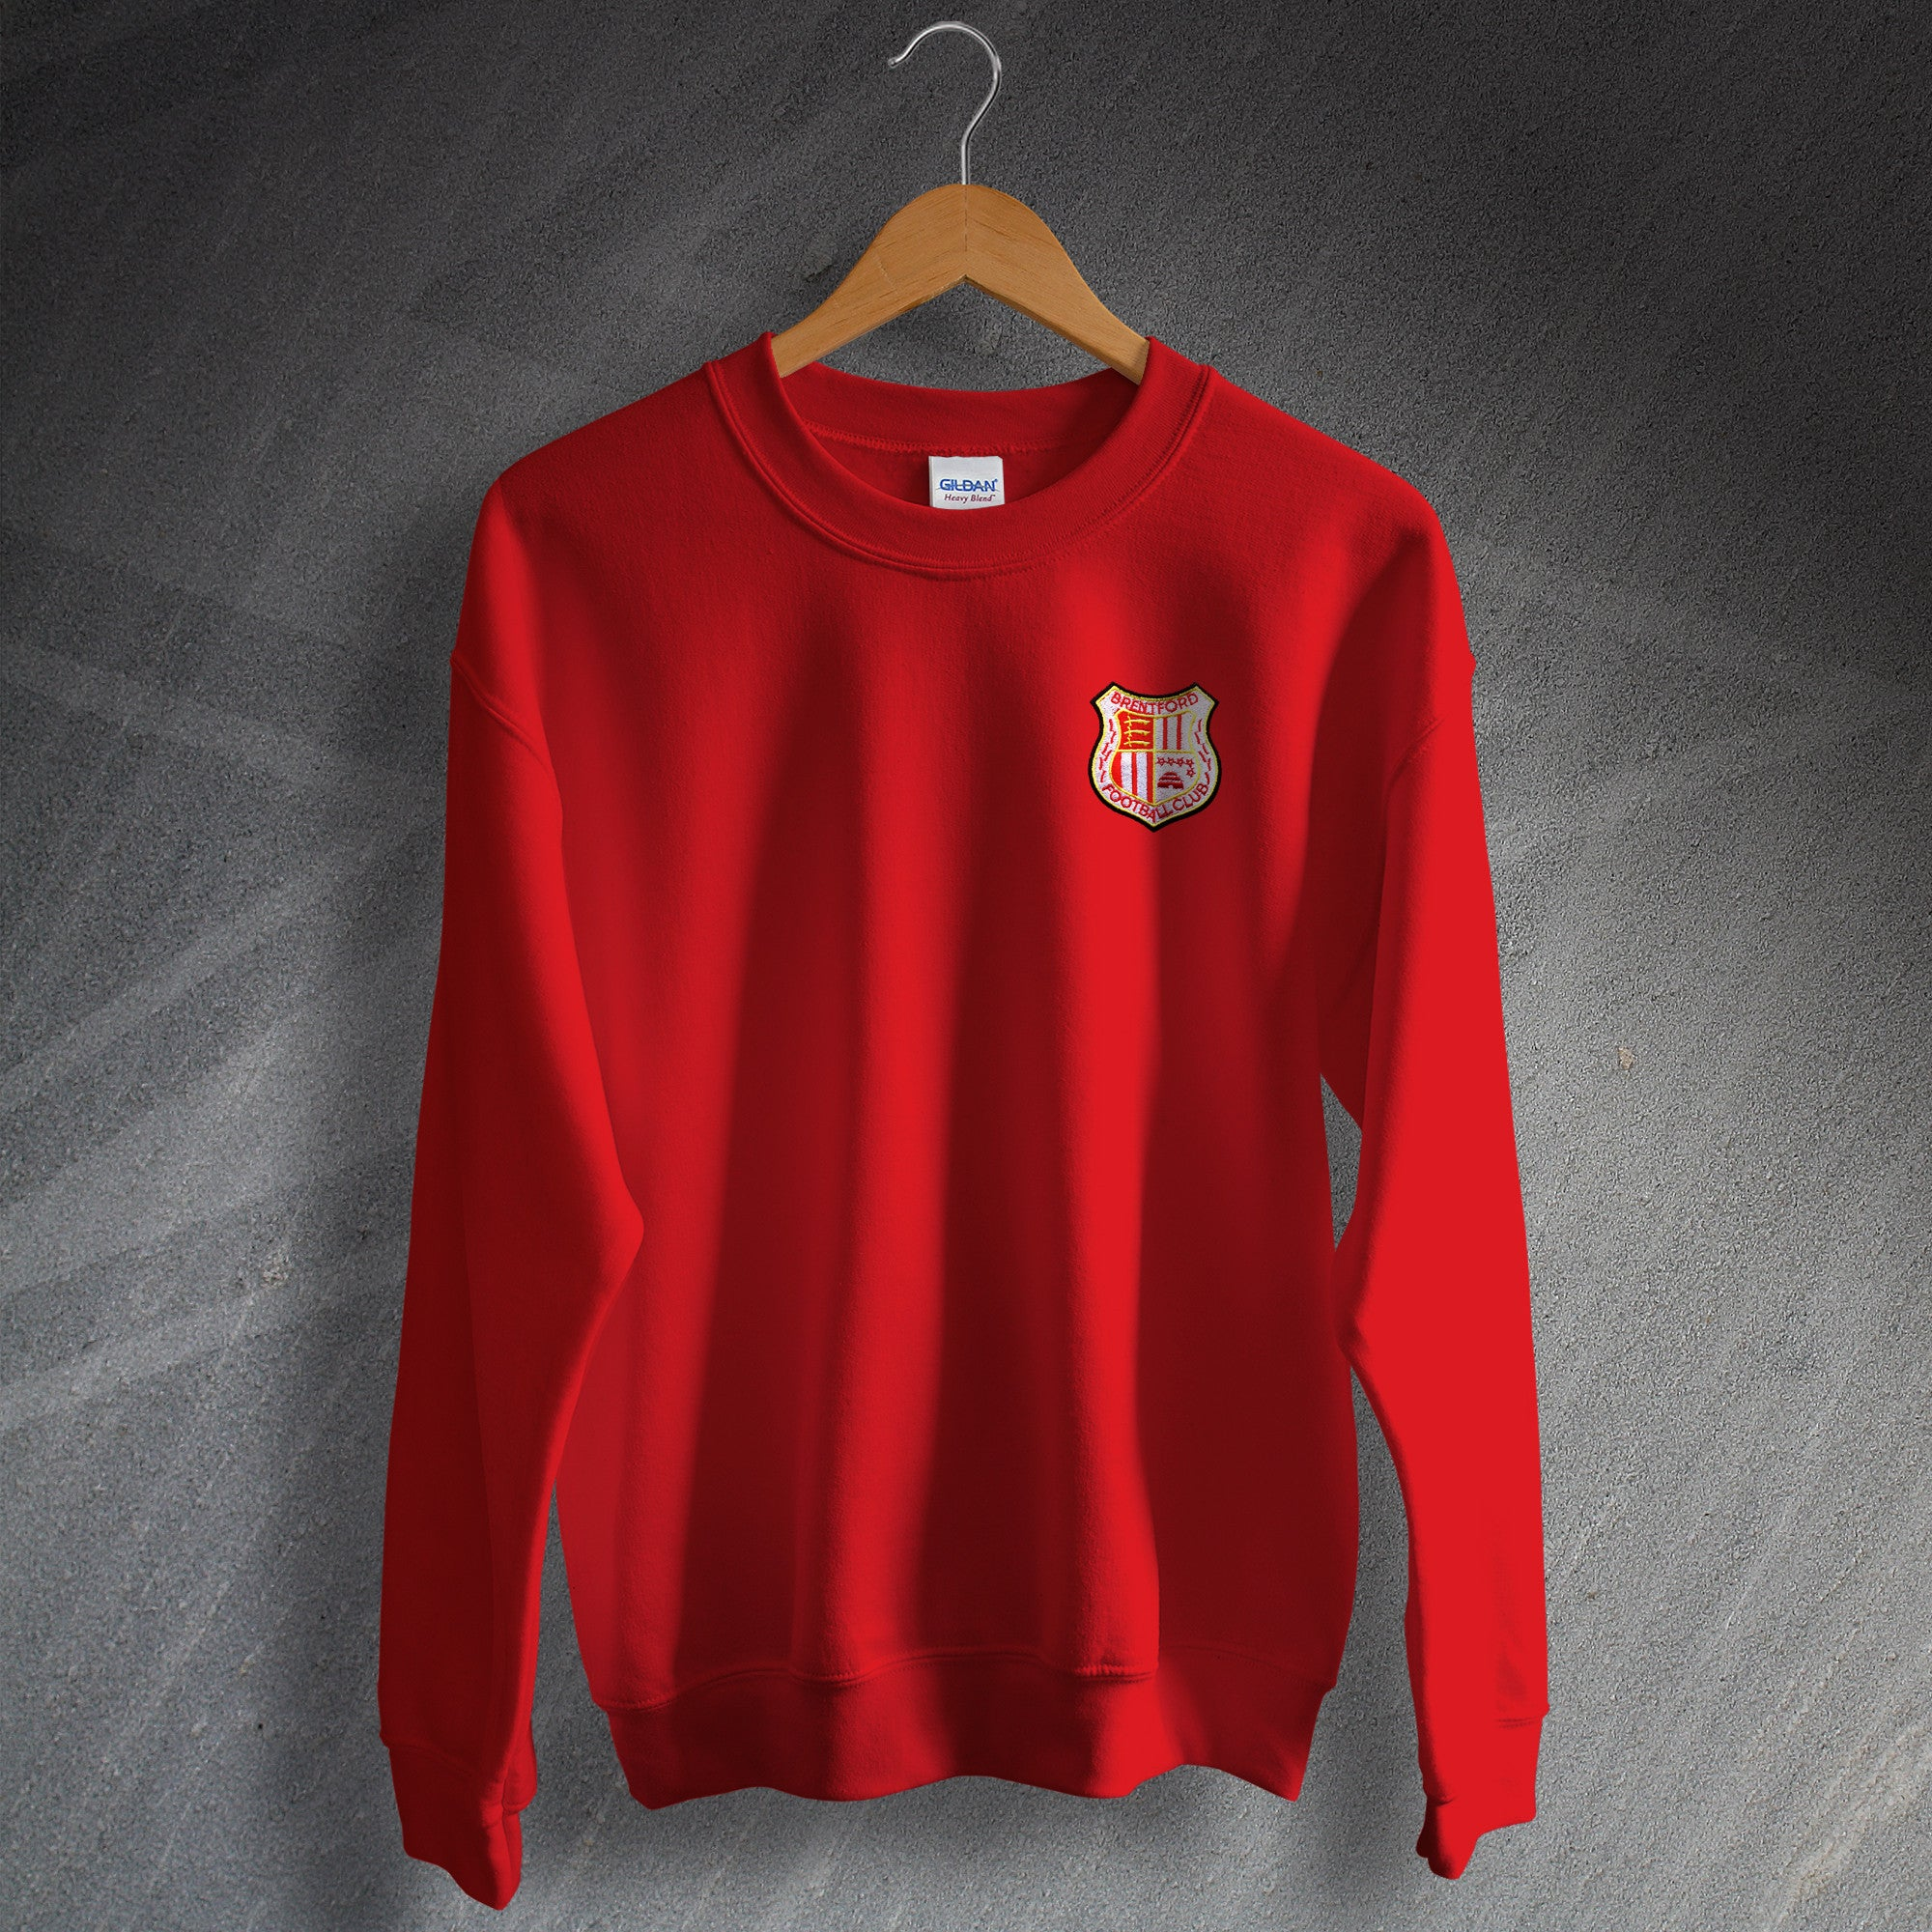 Retro Brentford Sweater for Sale  b8bfeefac